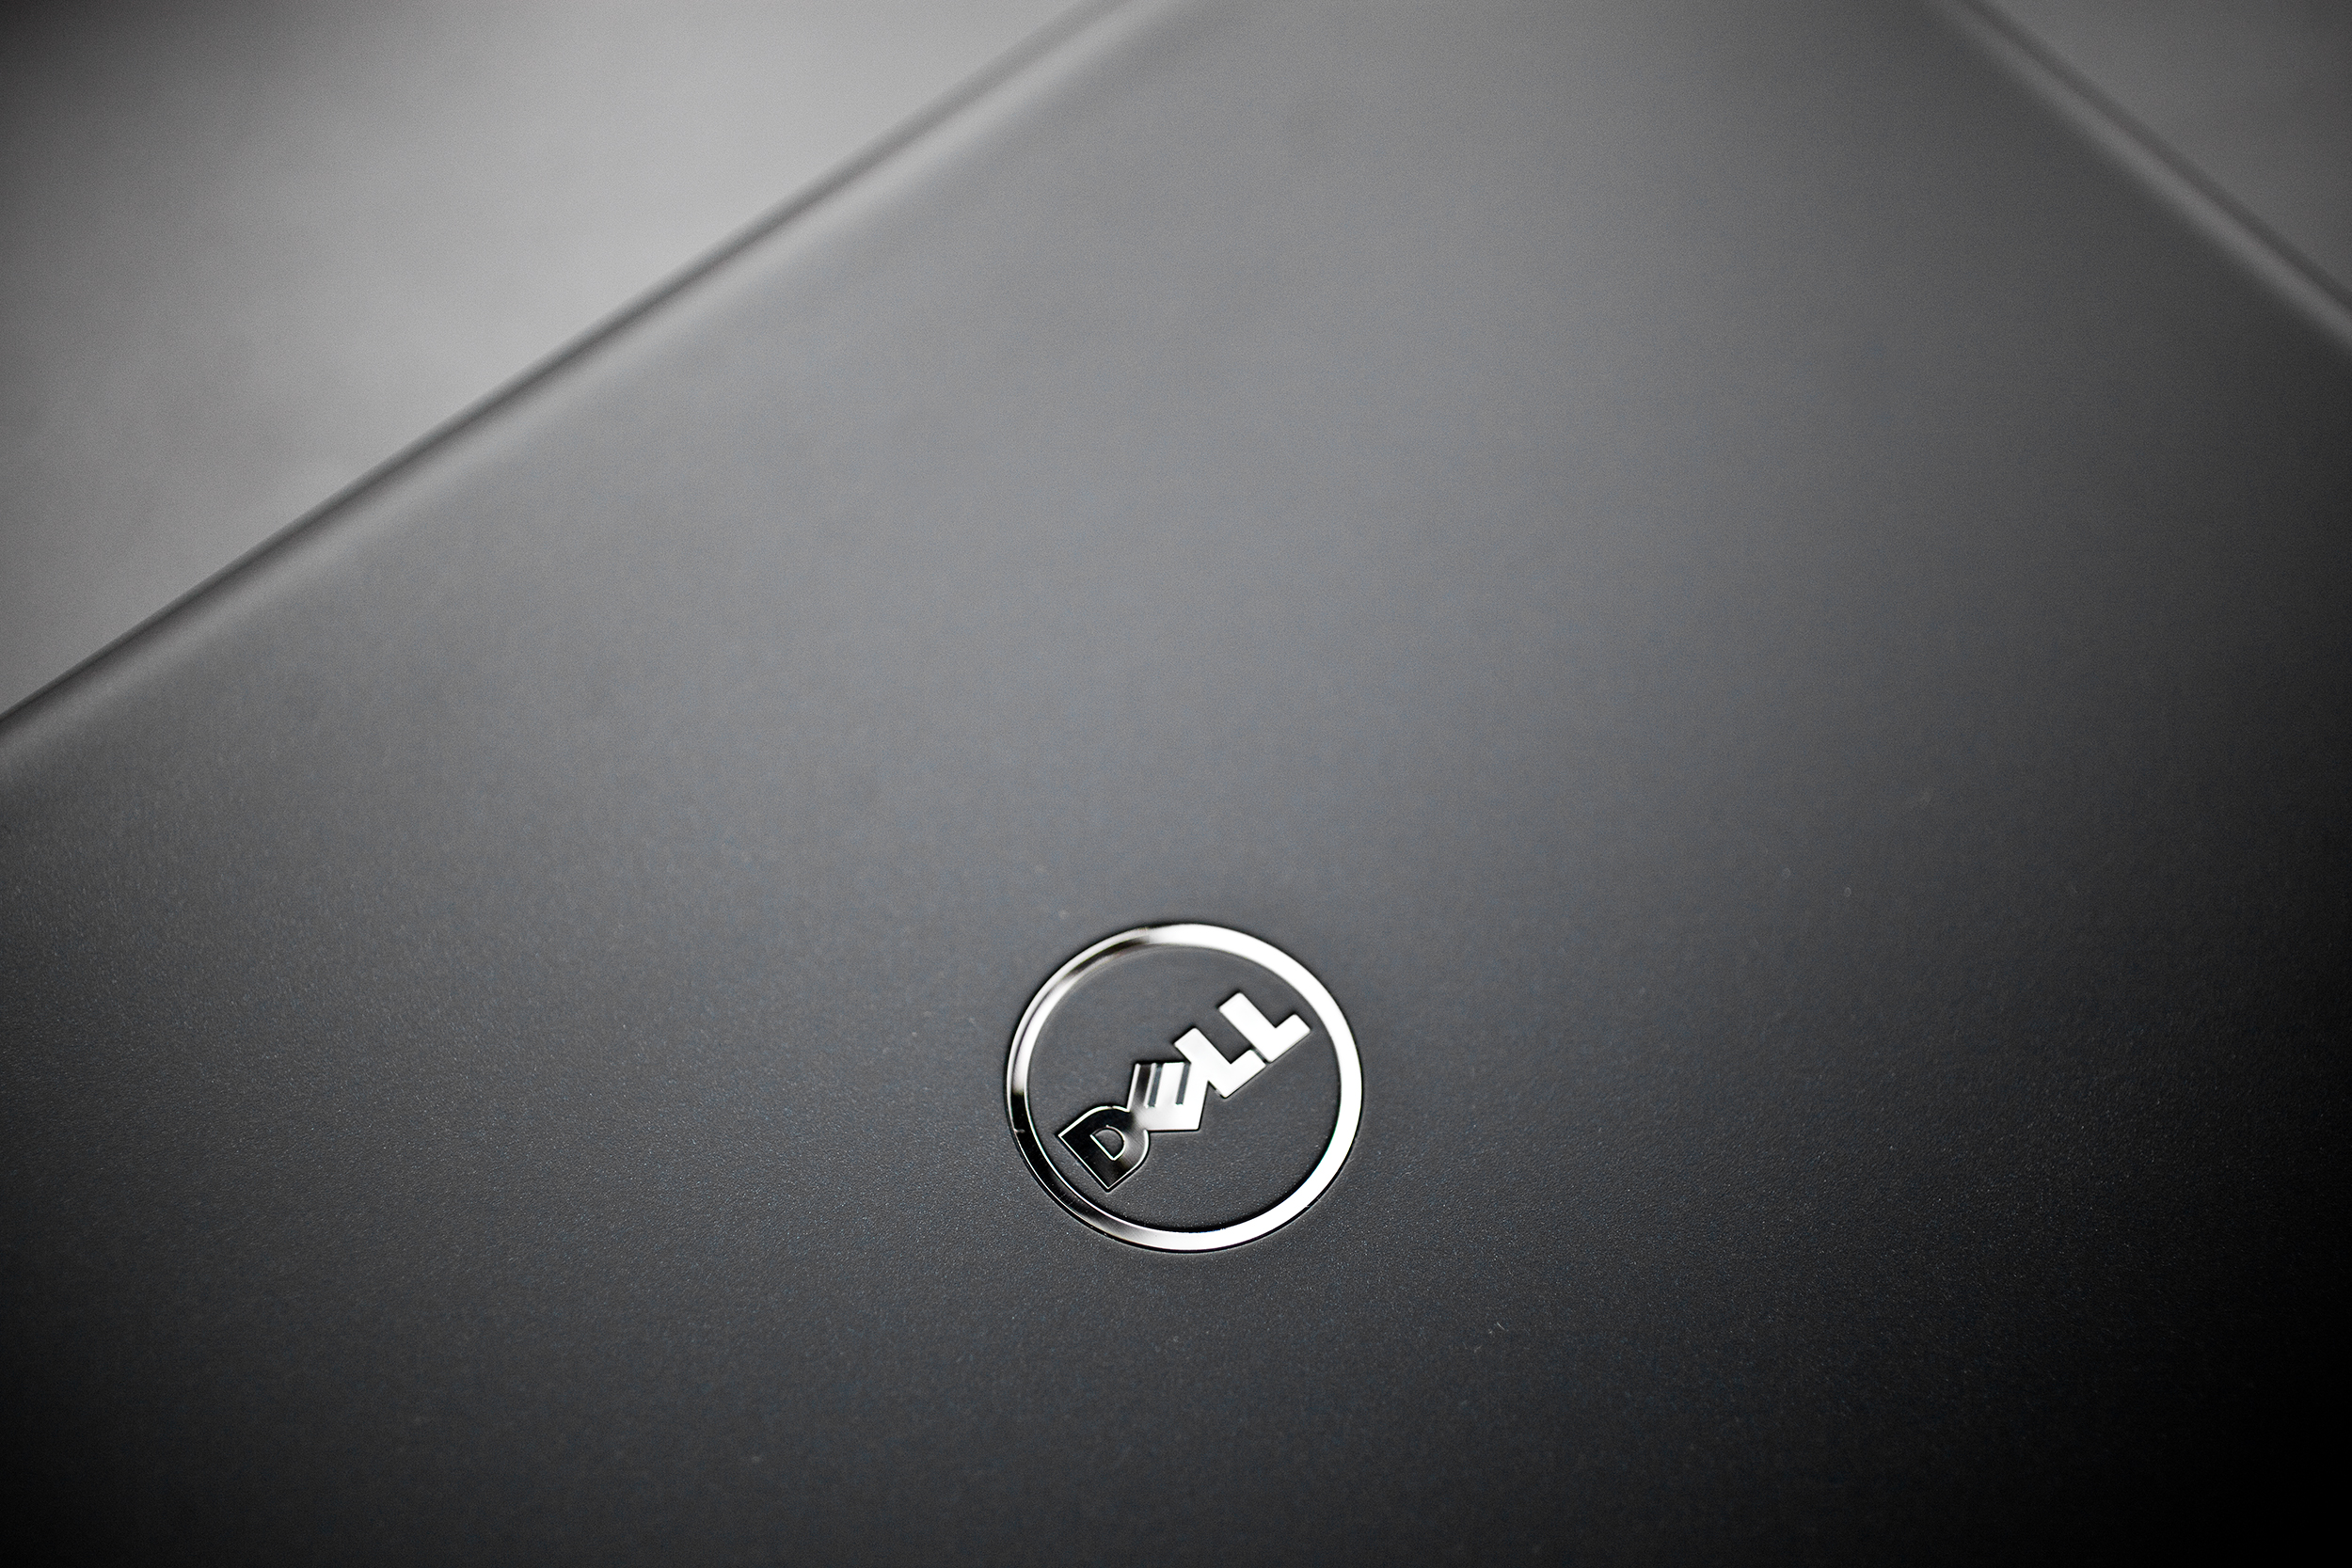 Dell Wallpaper: Dell Latitude Wallpaper